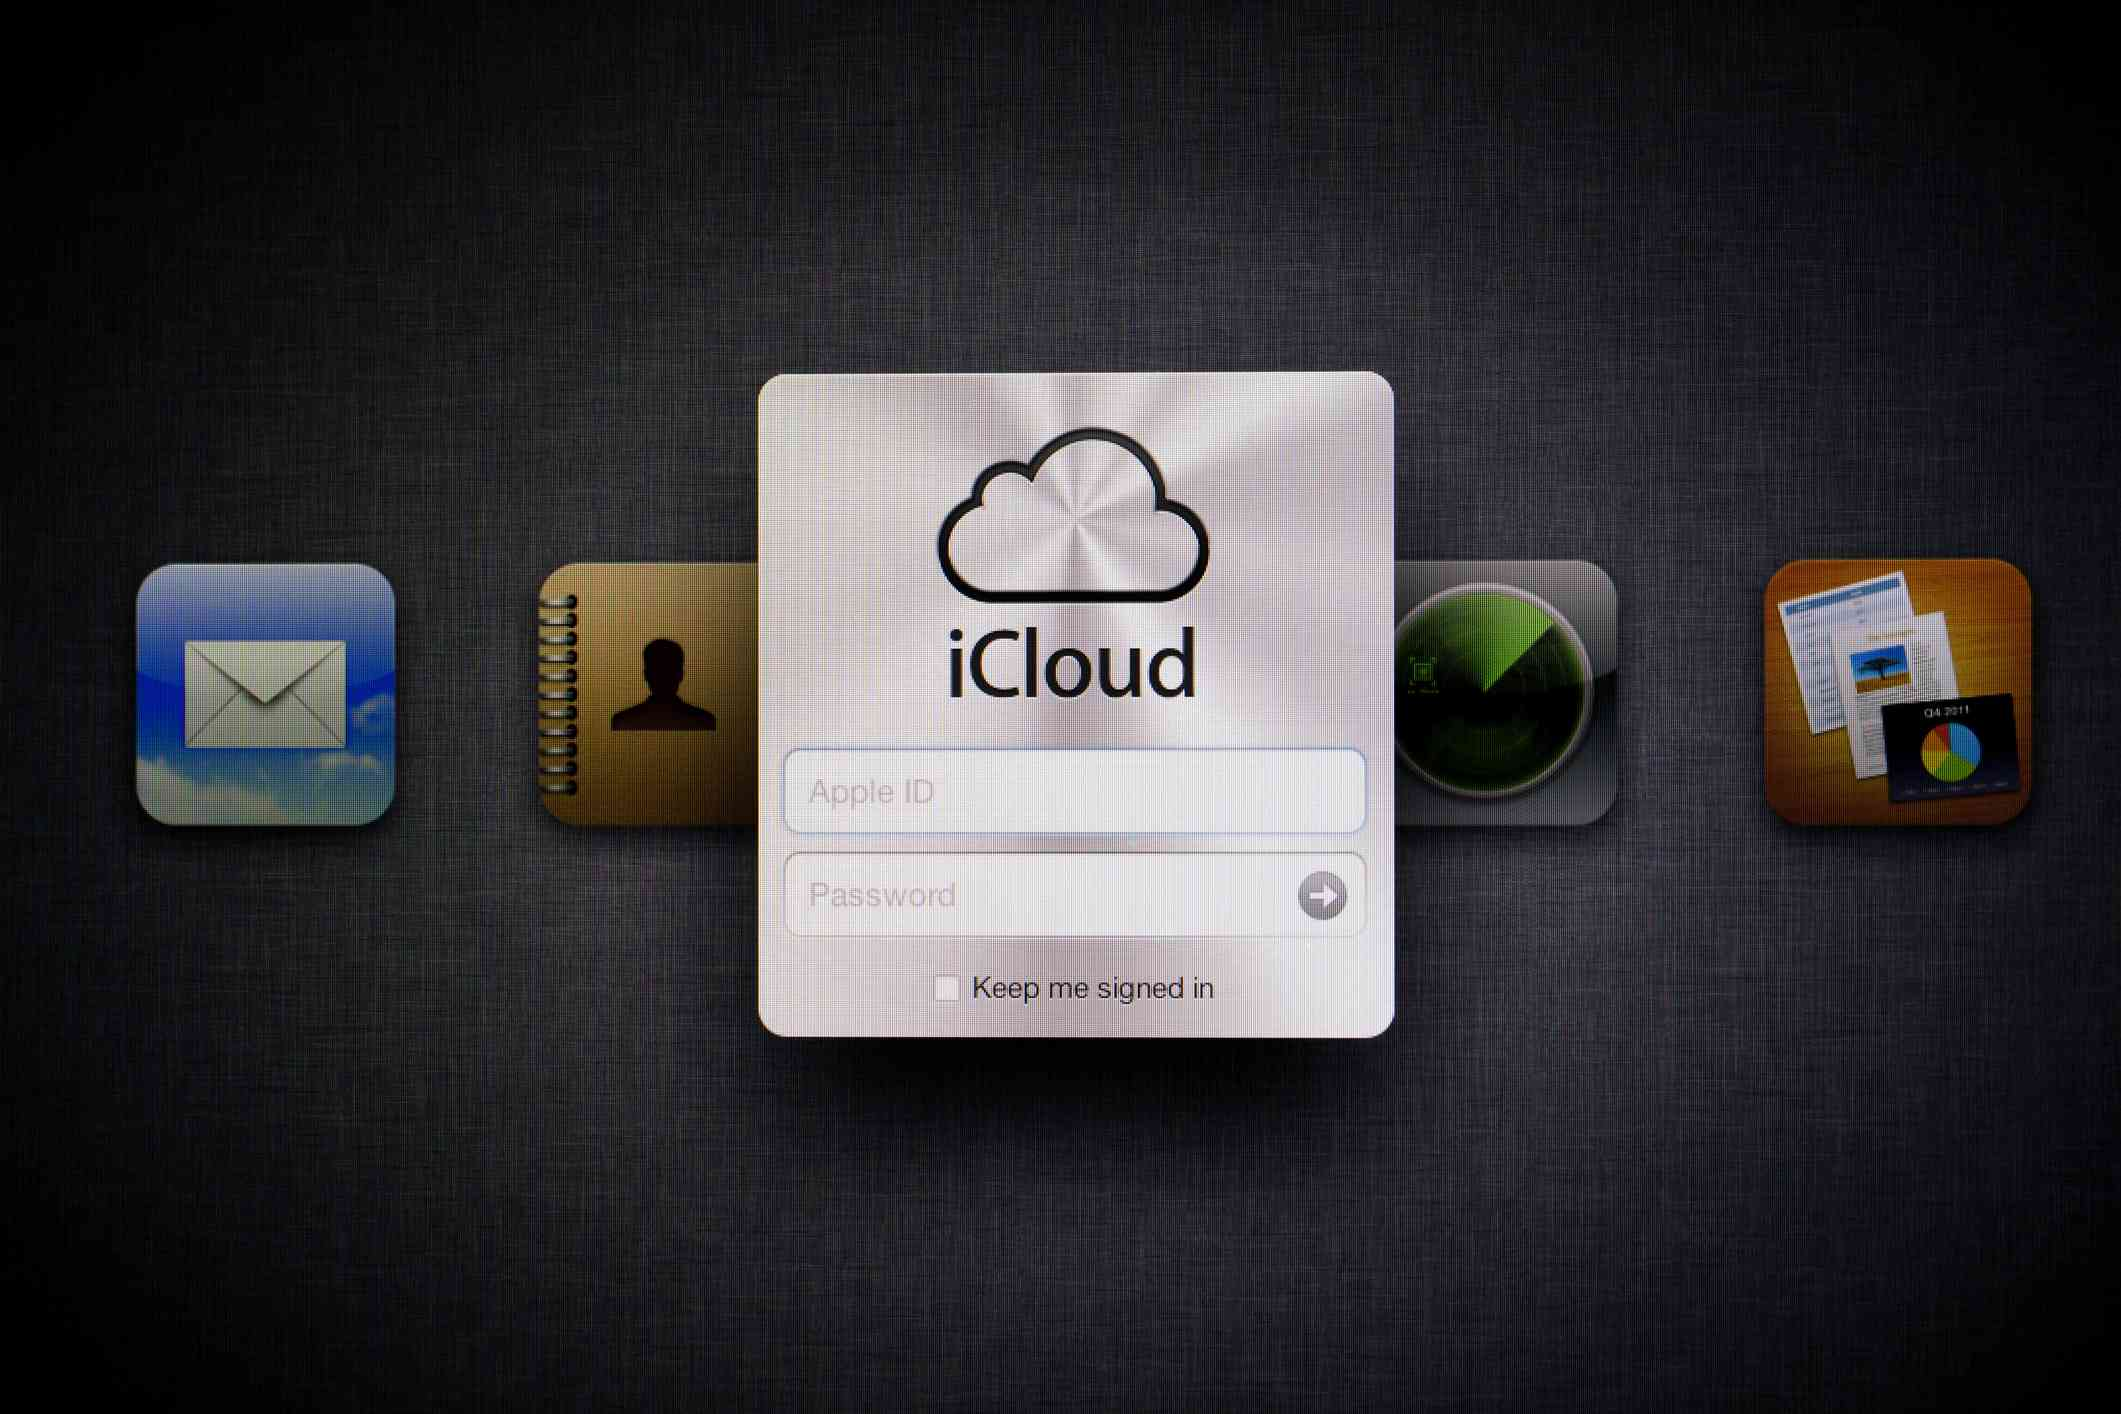 Apple iCloud Web Page with iCloud email icon